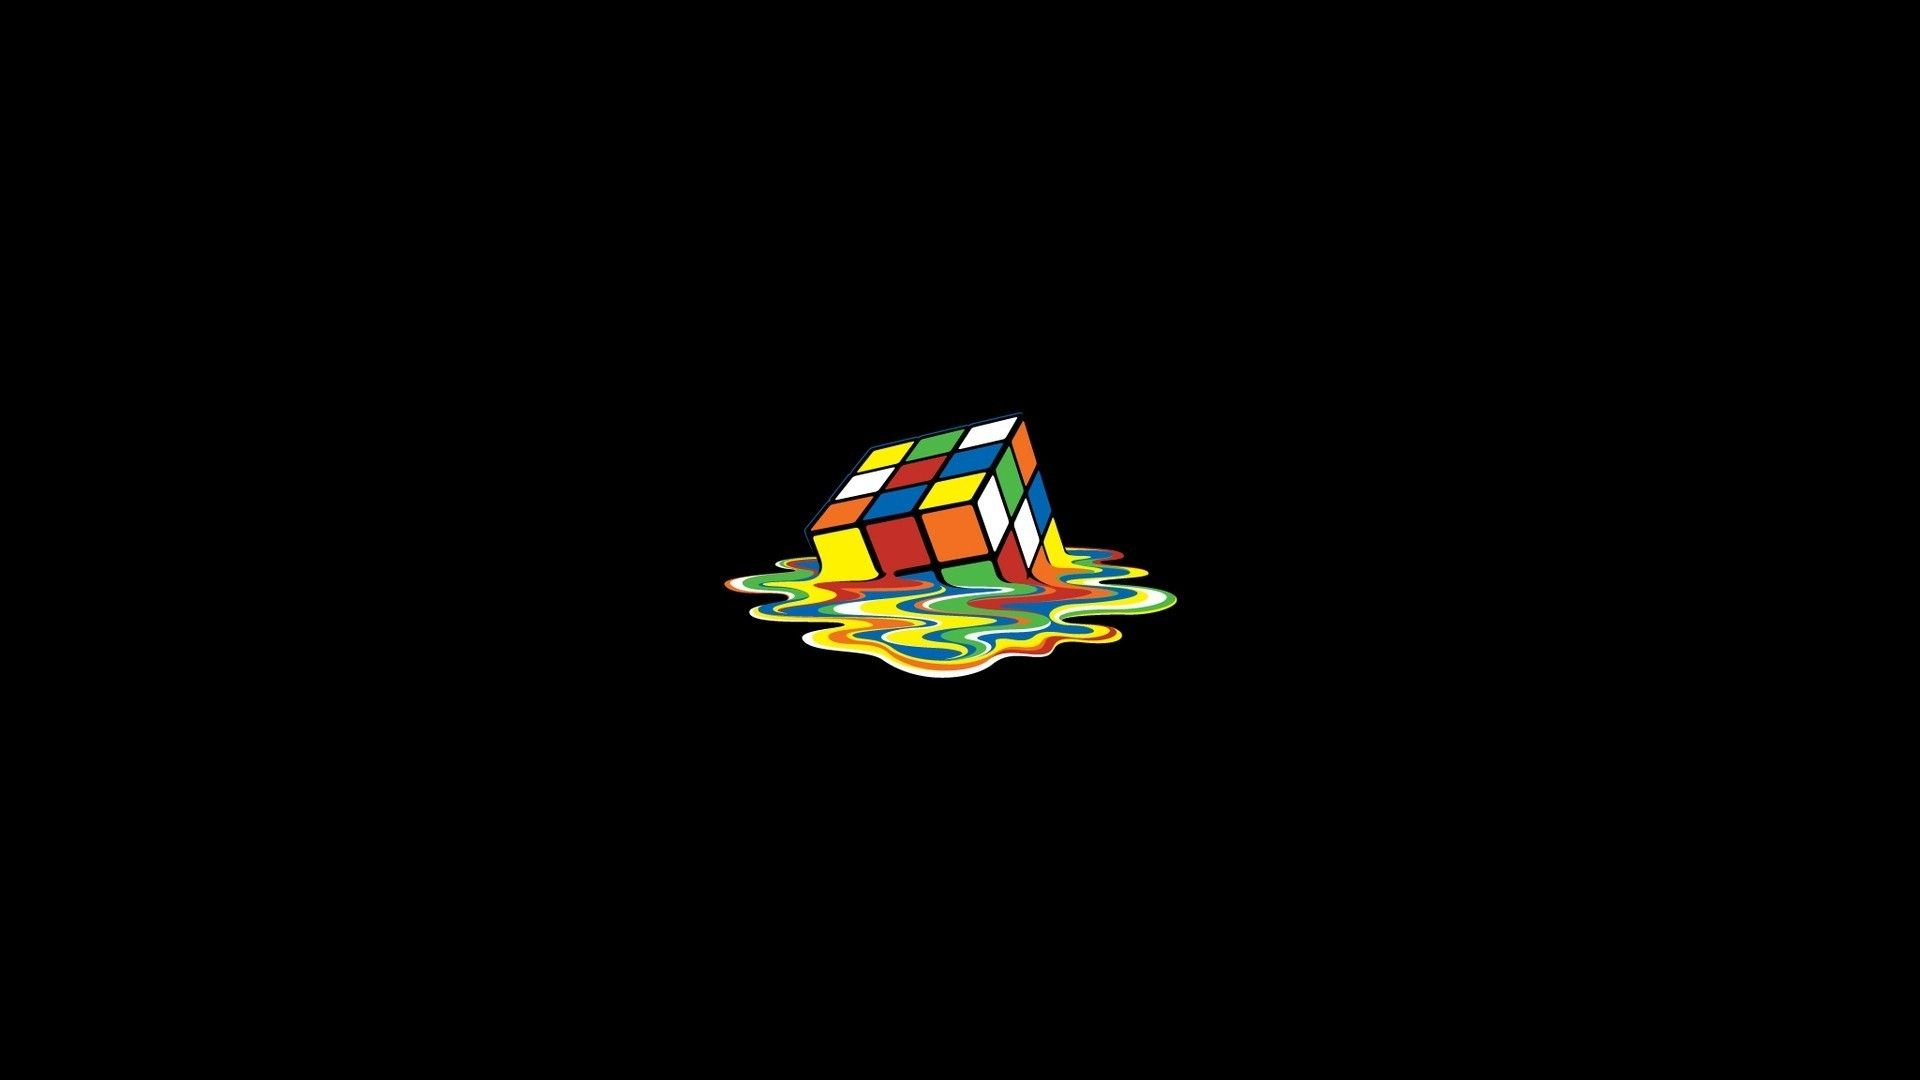 Hd Wallpaper Wallpapers Free Download Molten Rubik Cube